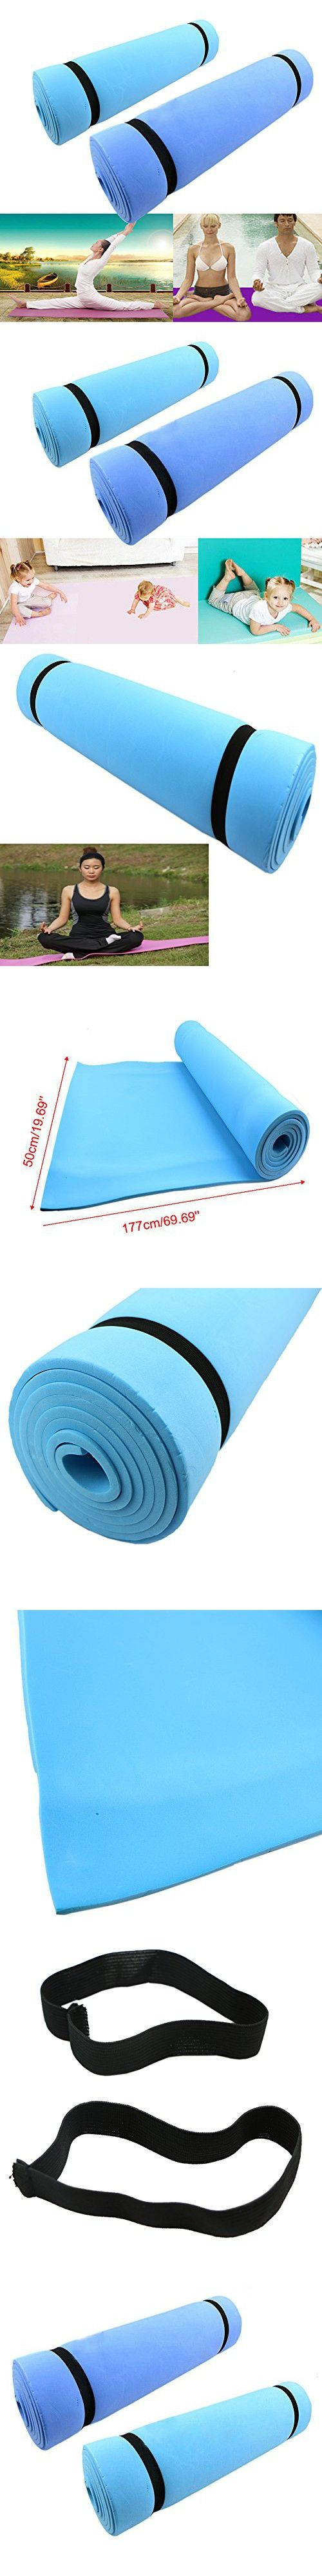 Zjzhao 177500.6cm Dampproof Sleeping Mattress Mat Exercise EVA Foam Yoga Pad 1PC